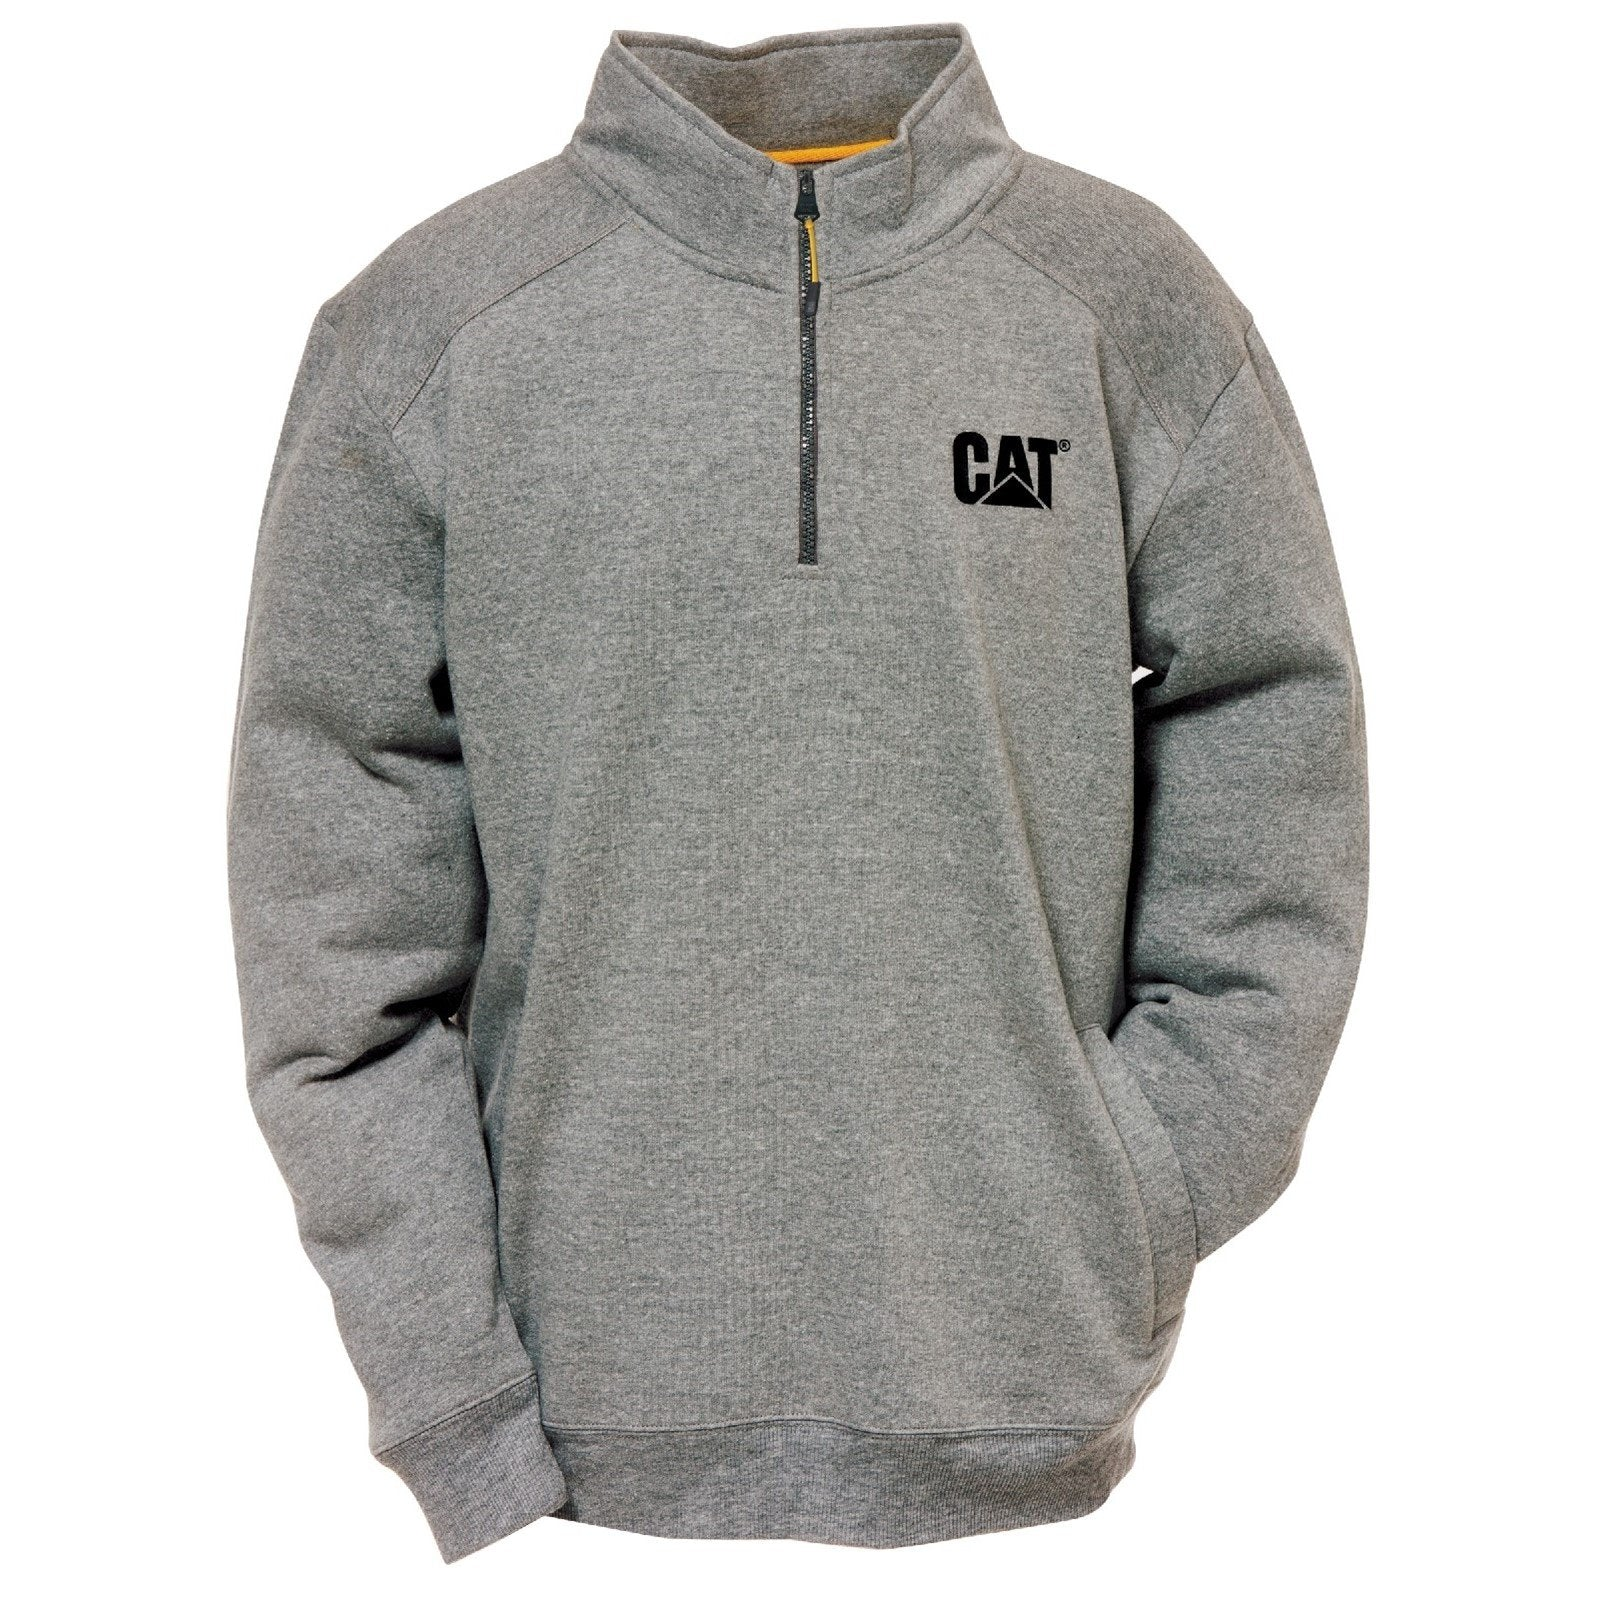 Caterpillar Canyon 1/4 Zip Sweatshirt